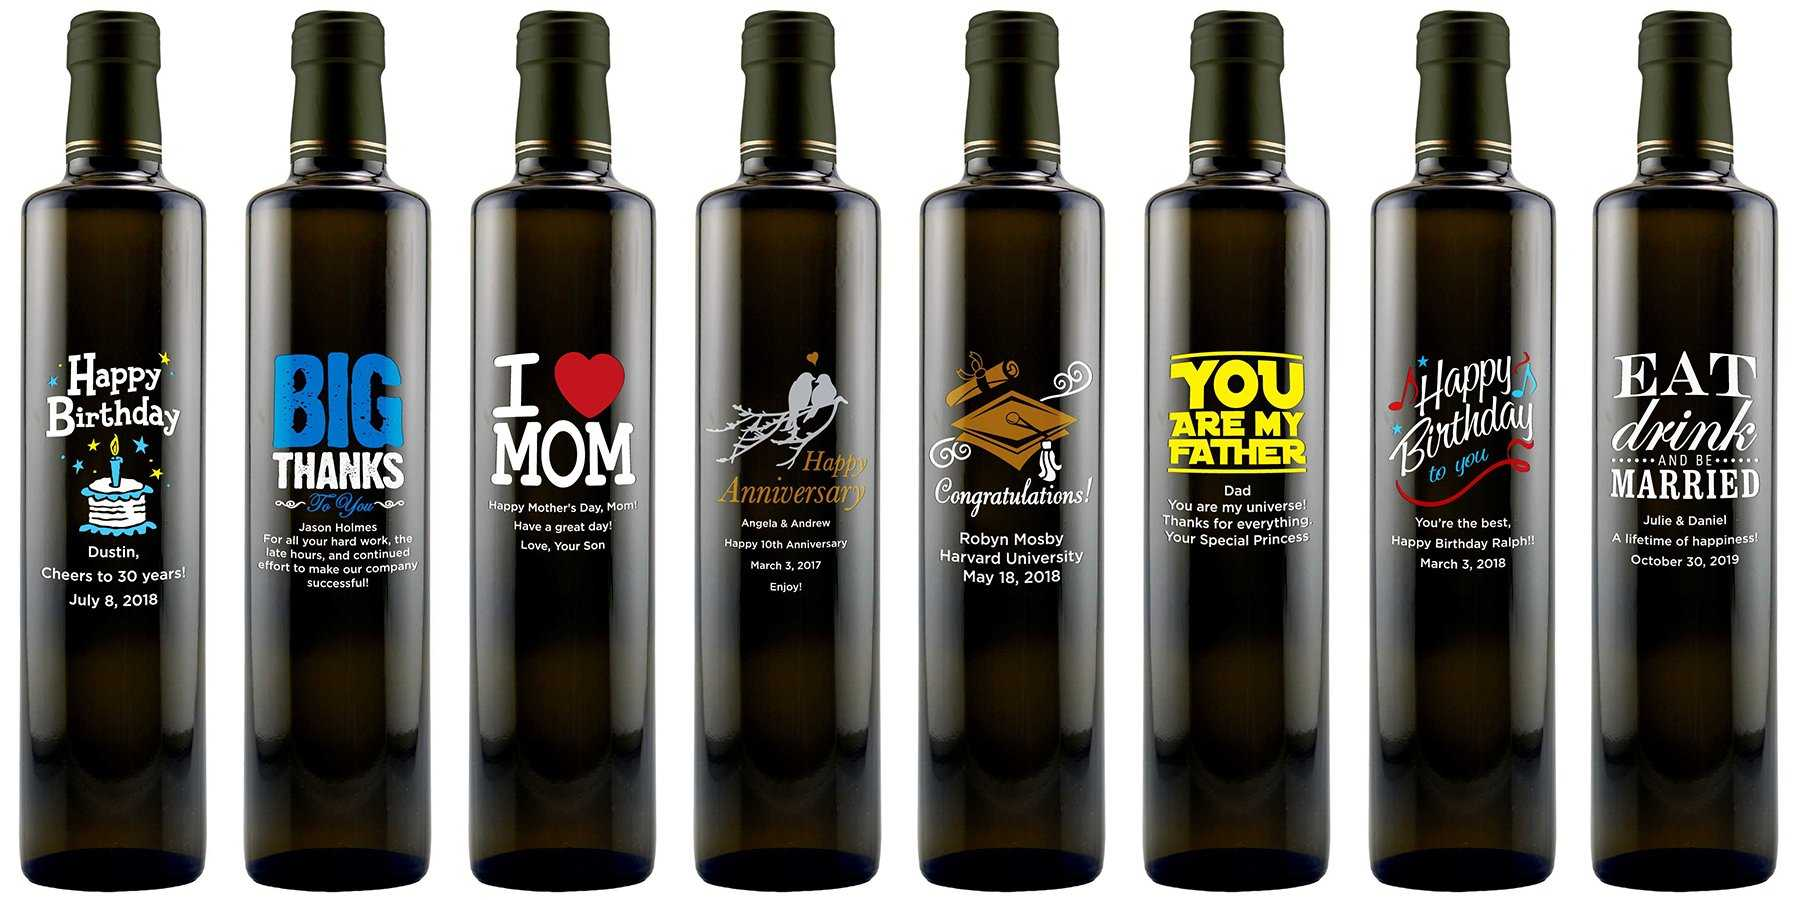 Personalized gourmet olive oil gifts by Etching Expressions